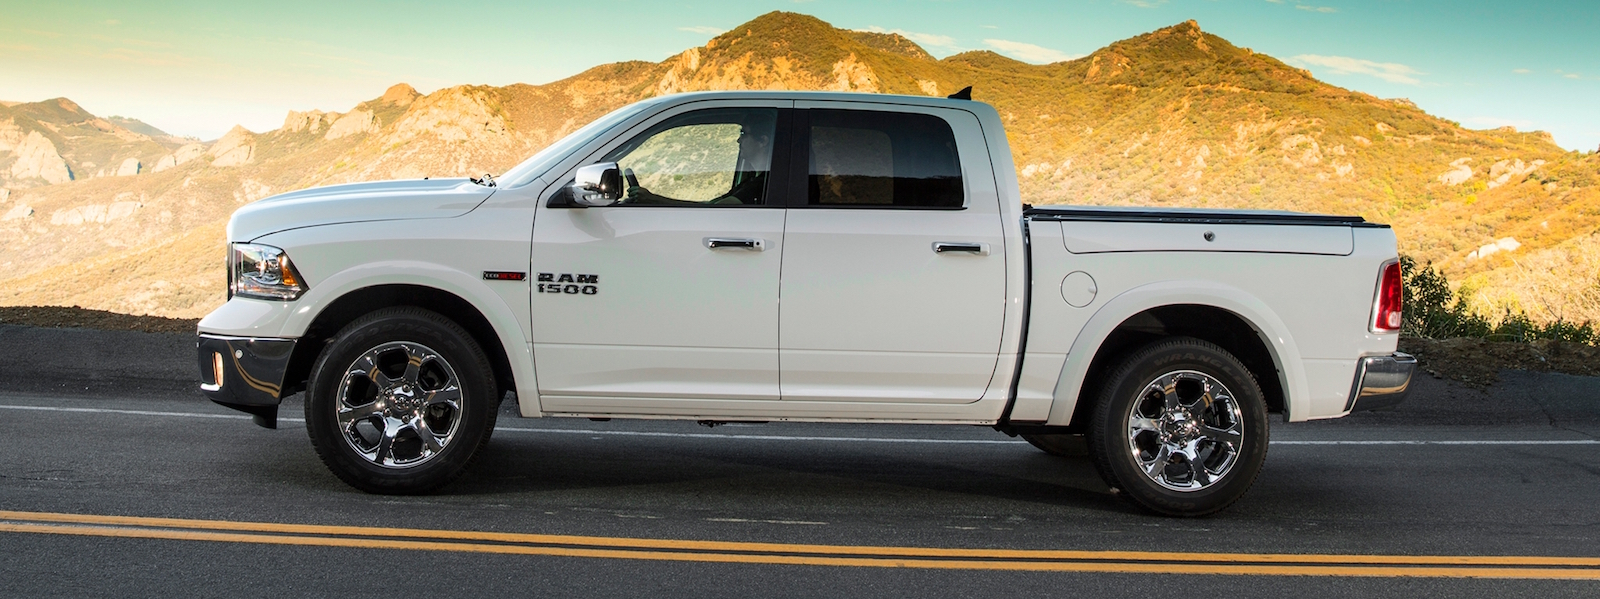 White 2014 RAM 1500 Driving on desert road – Colorado Springs, CO